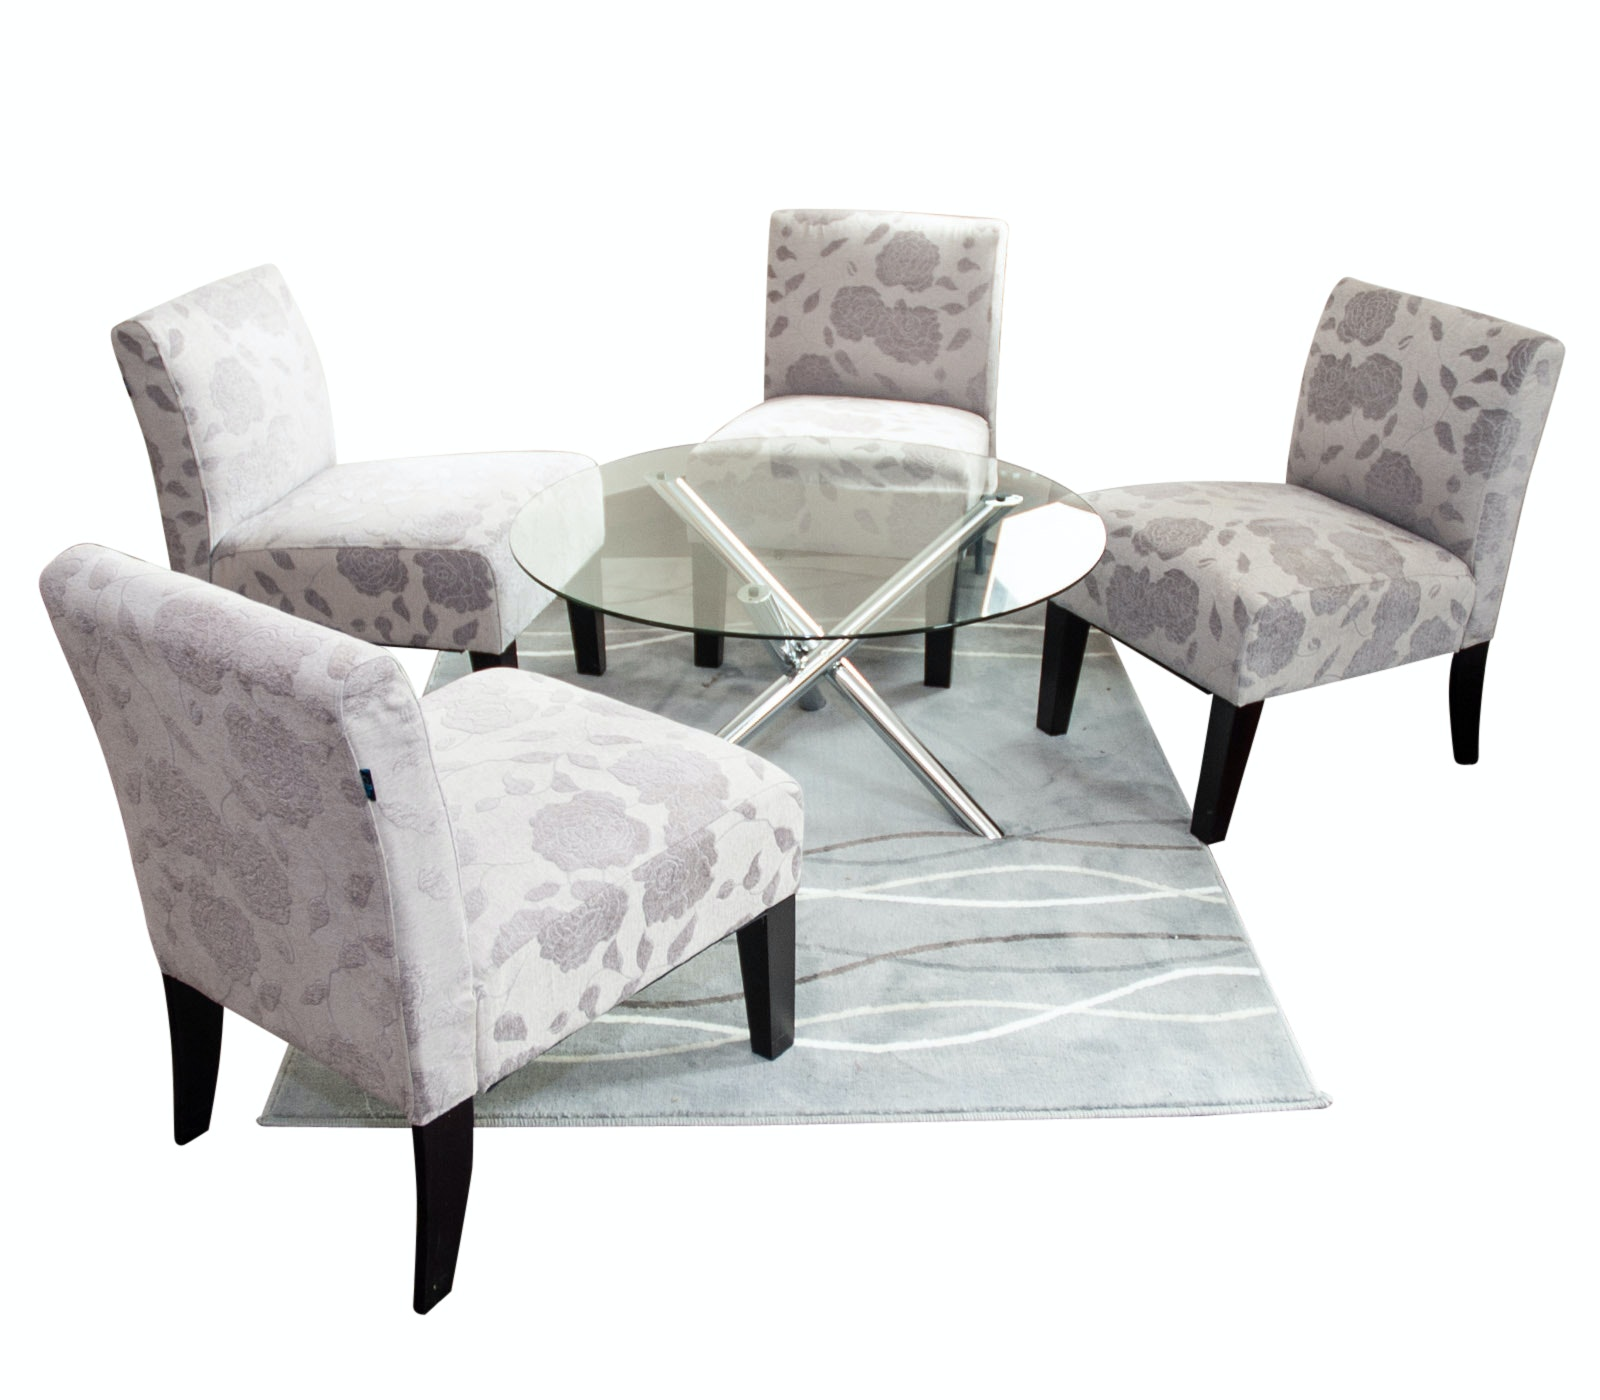 Contemporary Glass Coffee Table, Rug and Chair Set